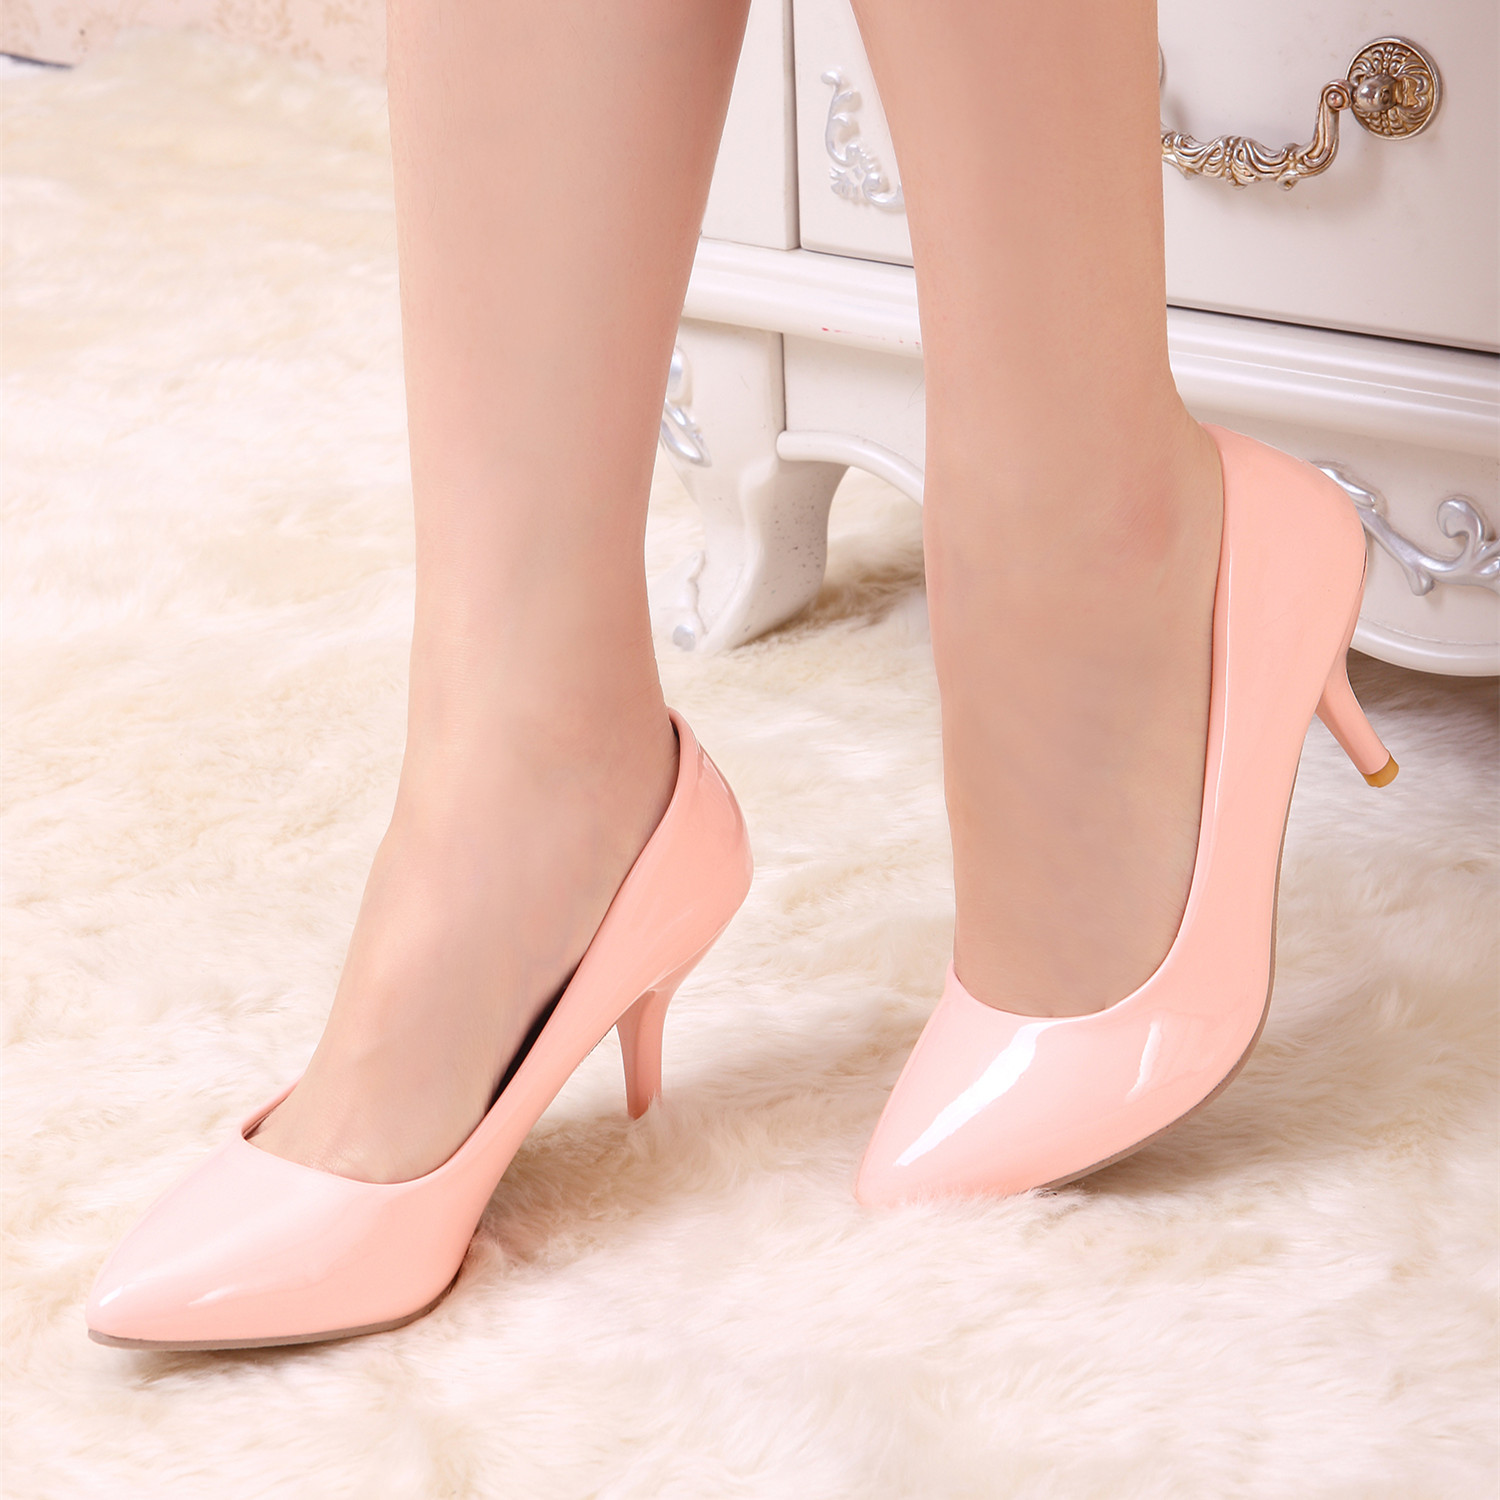 2016 new spring women shoes small yards 32 33 OL work shoes patent leather high heels paltform sexy women pumps plus size 44 45 genuine leather women high heels pumps female ol comfortable black work shoes 32 33 40 41 42 43 44 sy 777